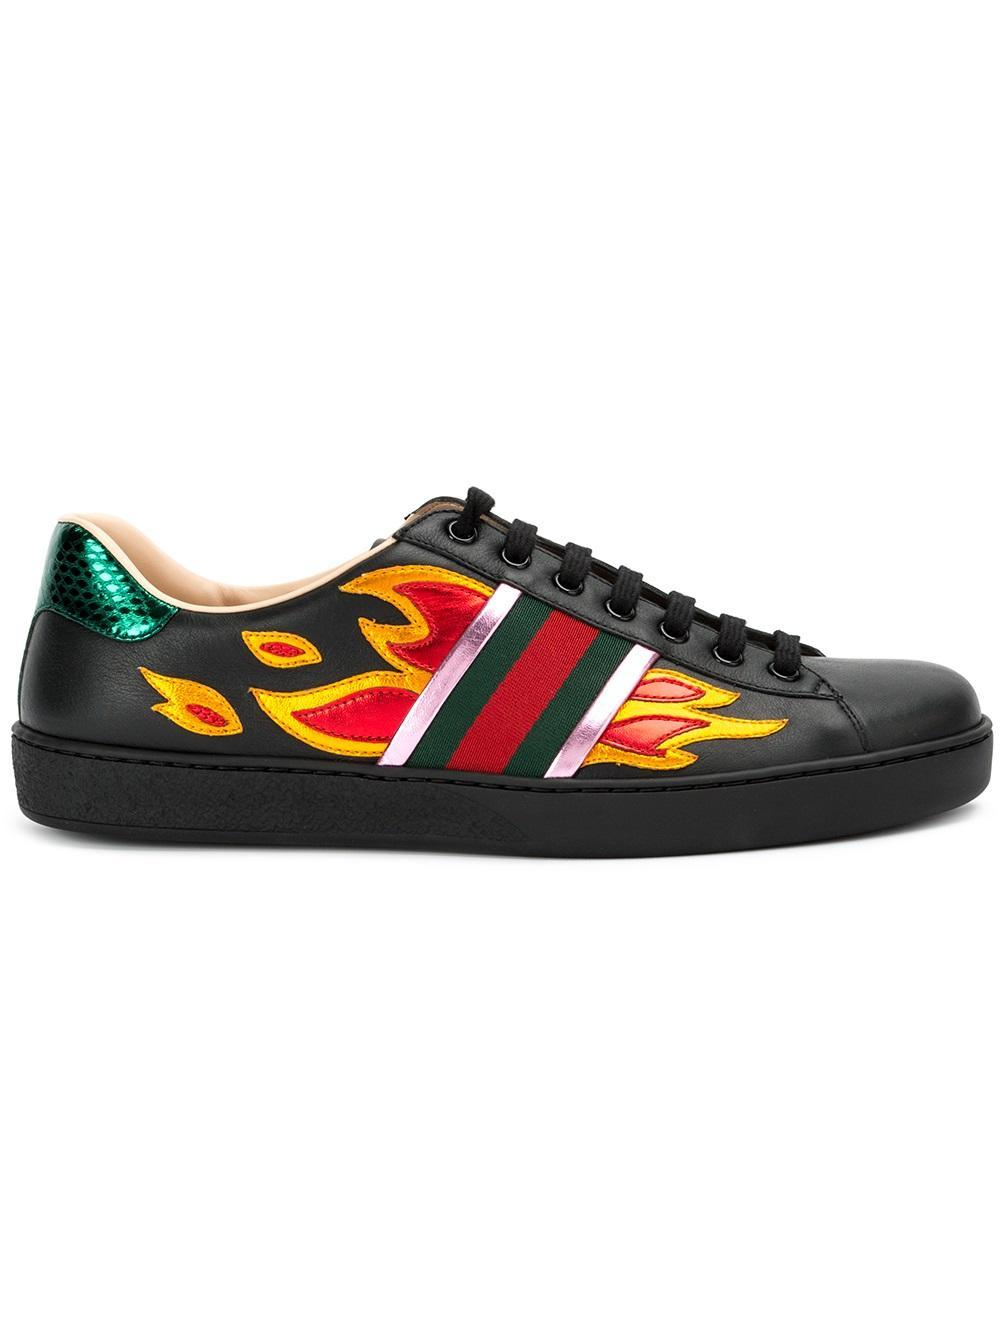 85d2ccaef56 Lyst - Gucci Ace Flame Sneakers in Black for Men